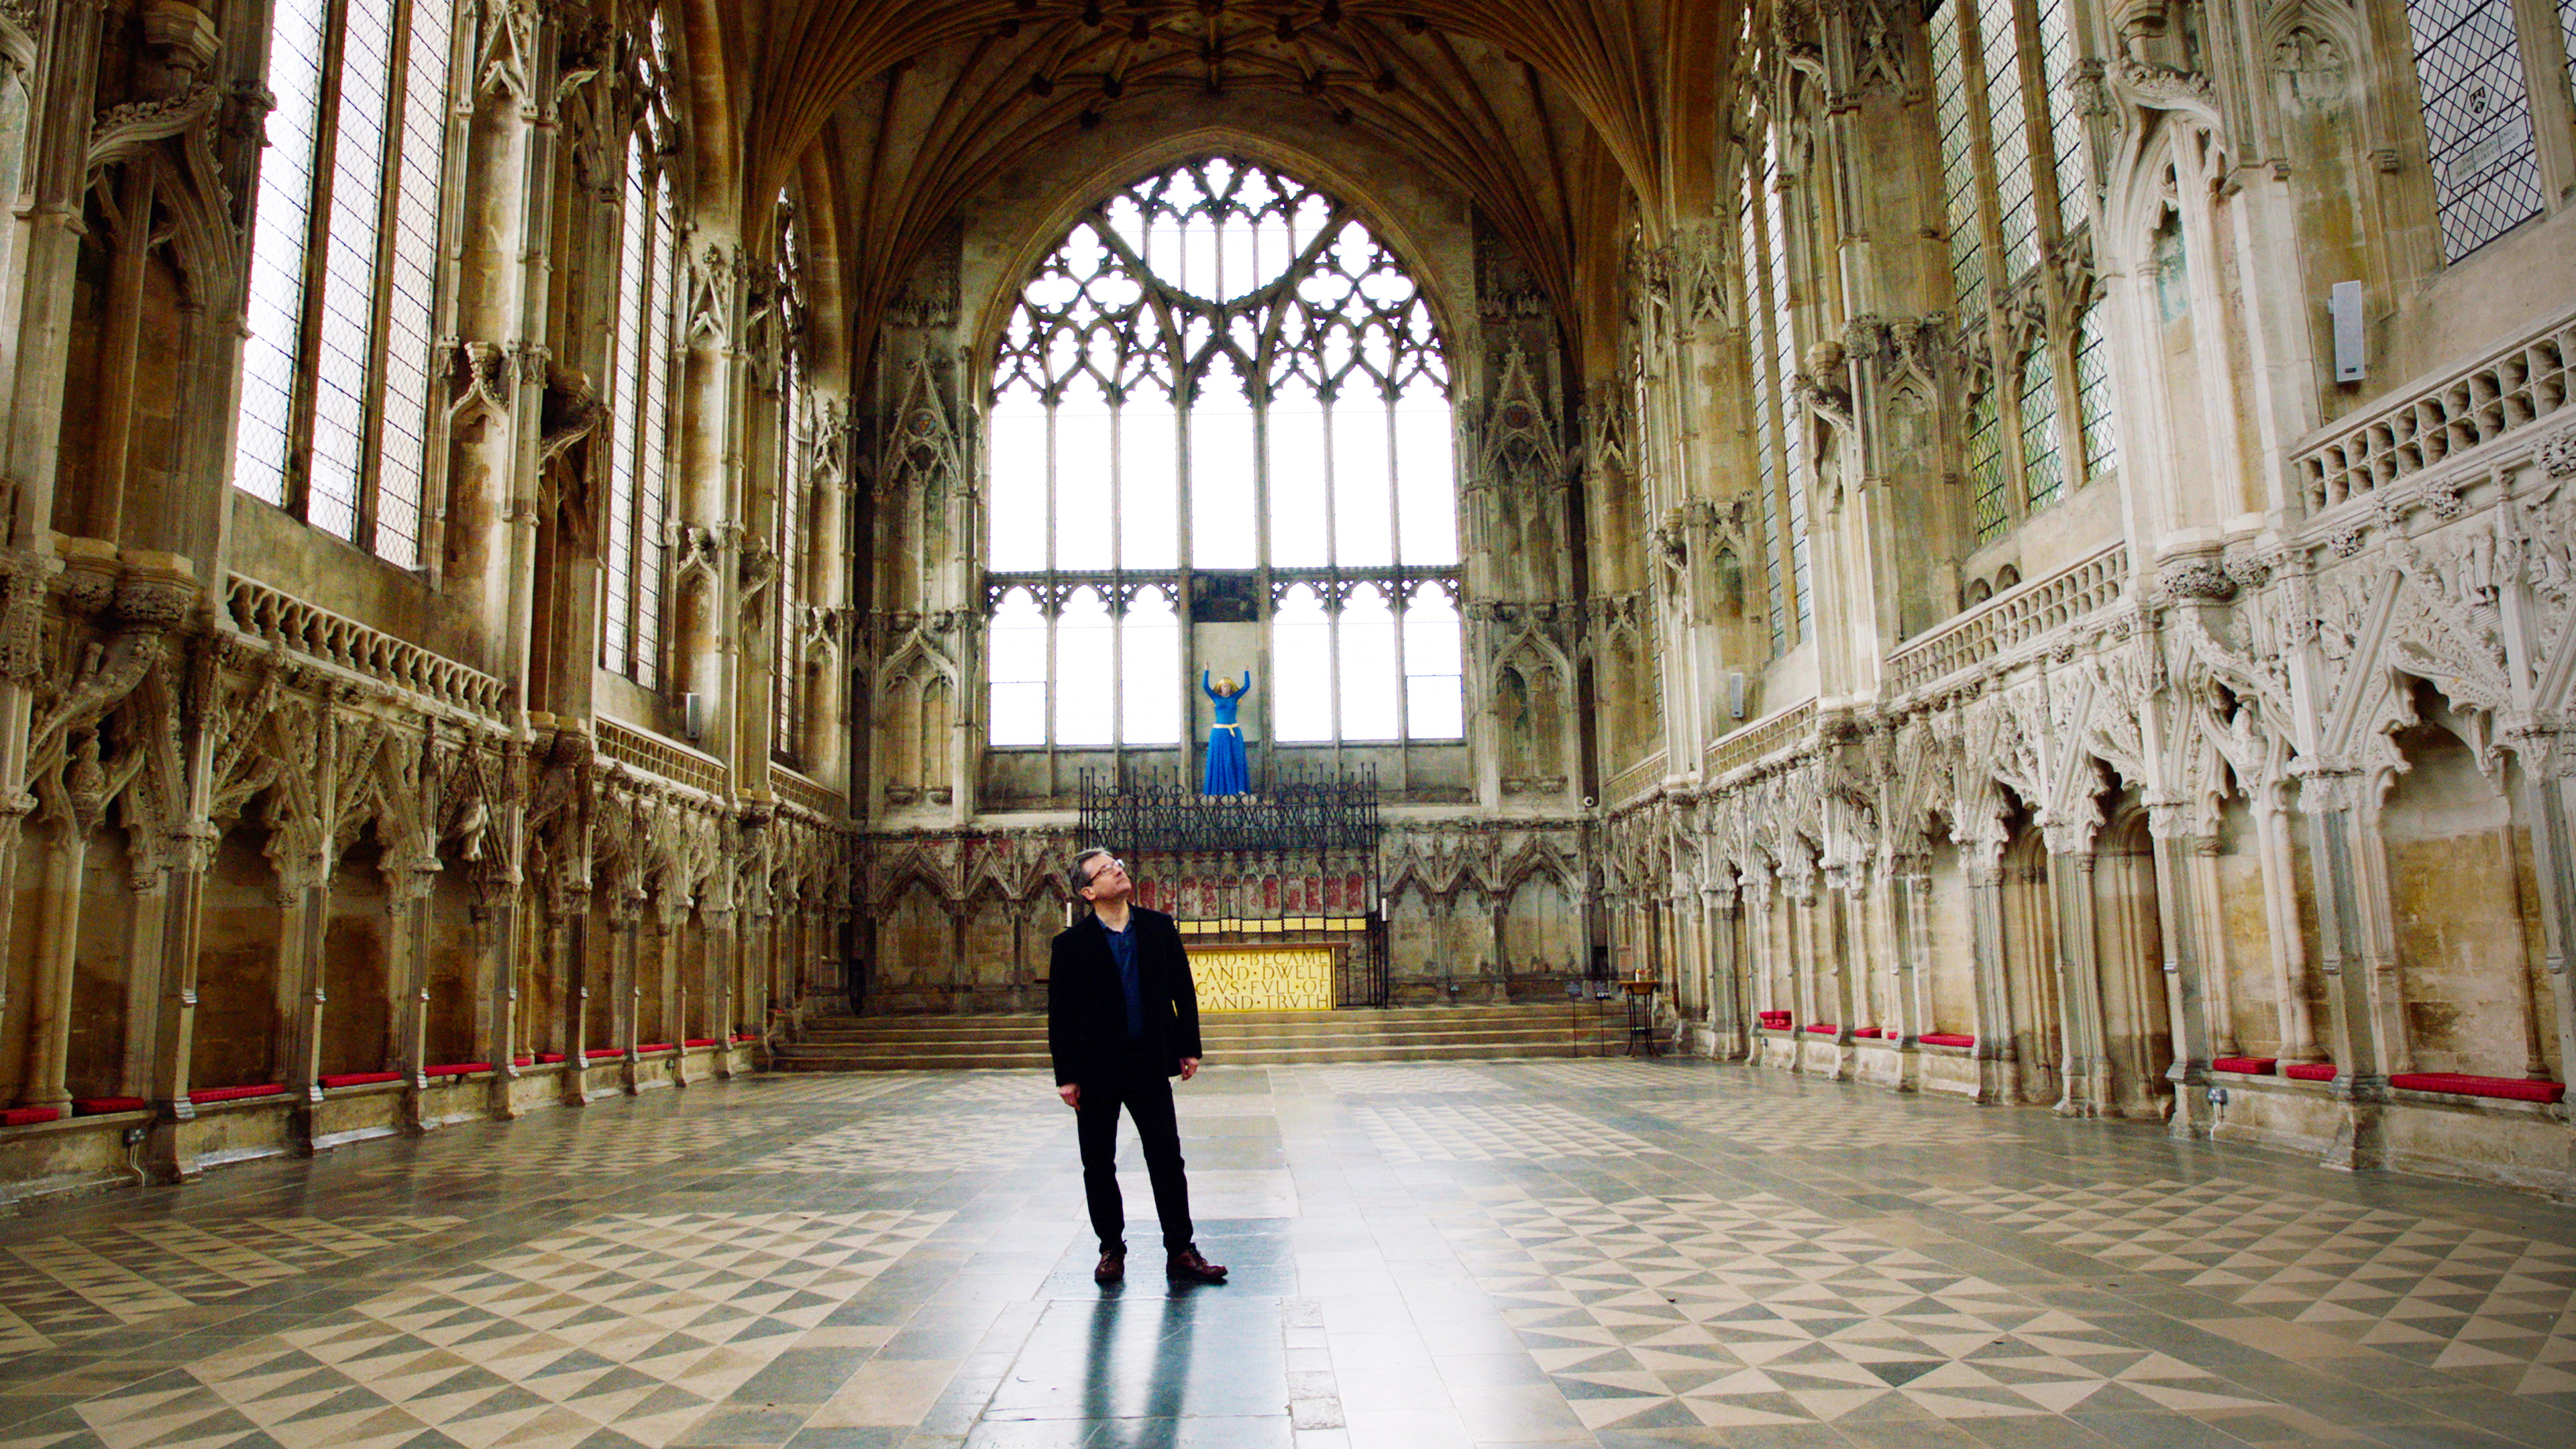 HENI Talks - Ely Cathedral's Lady Chapel: Devotion and Destruction